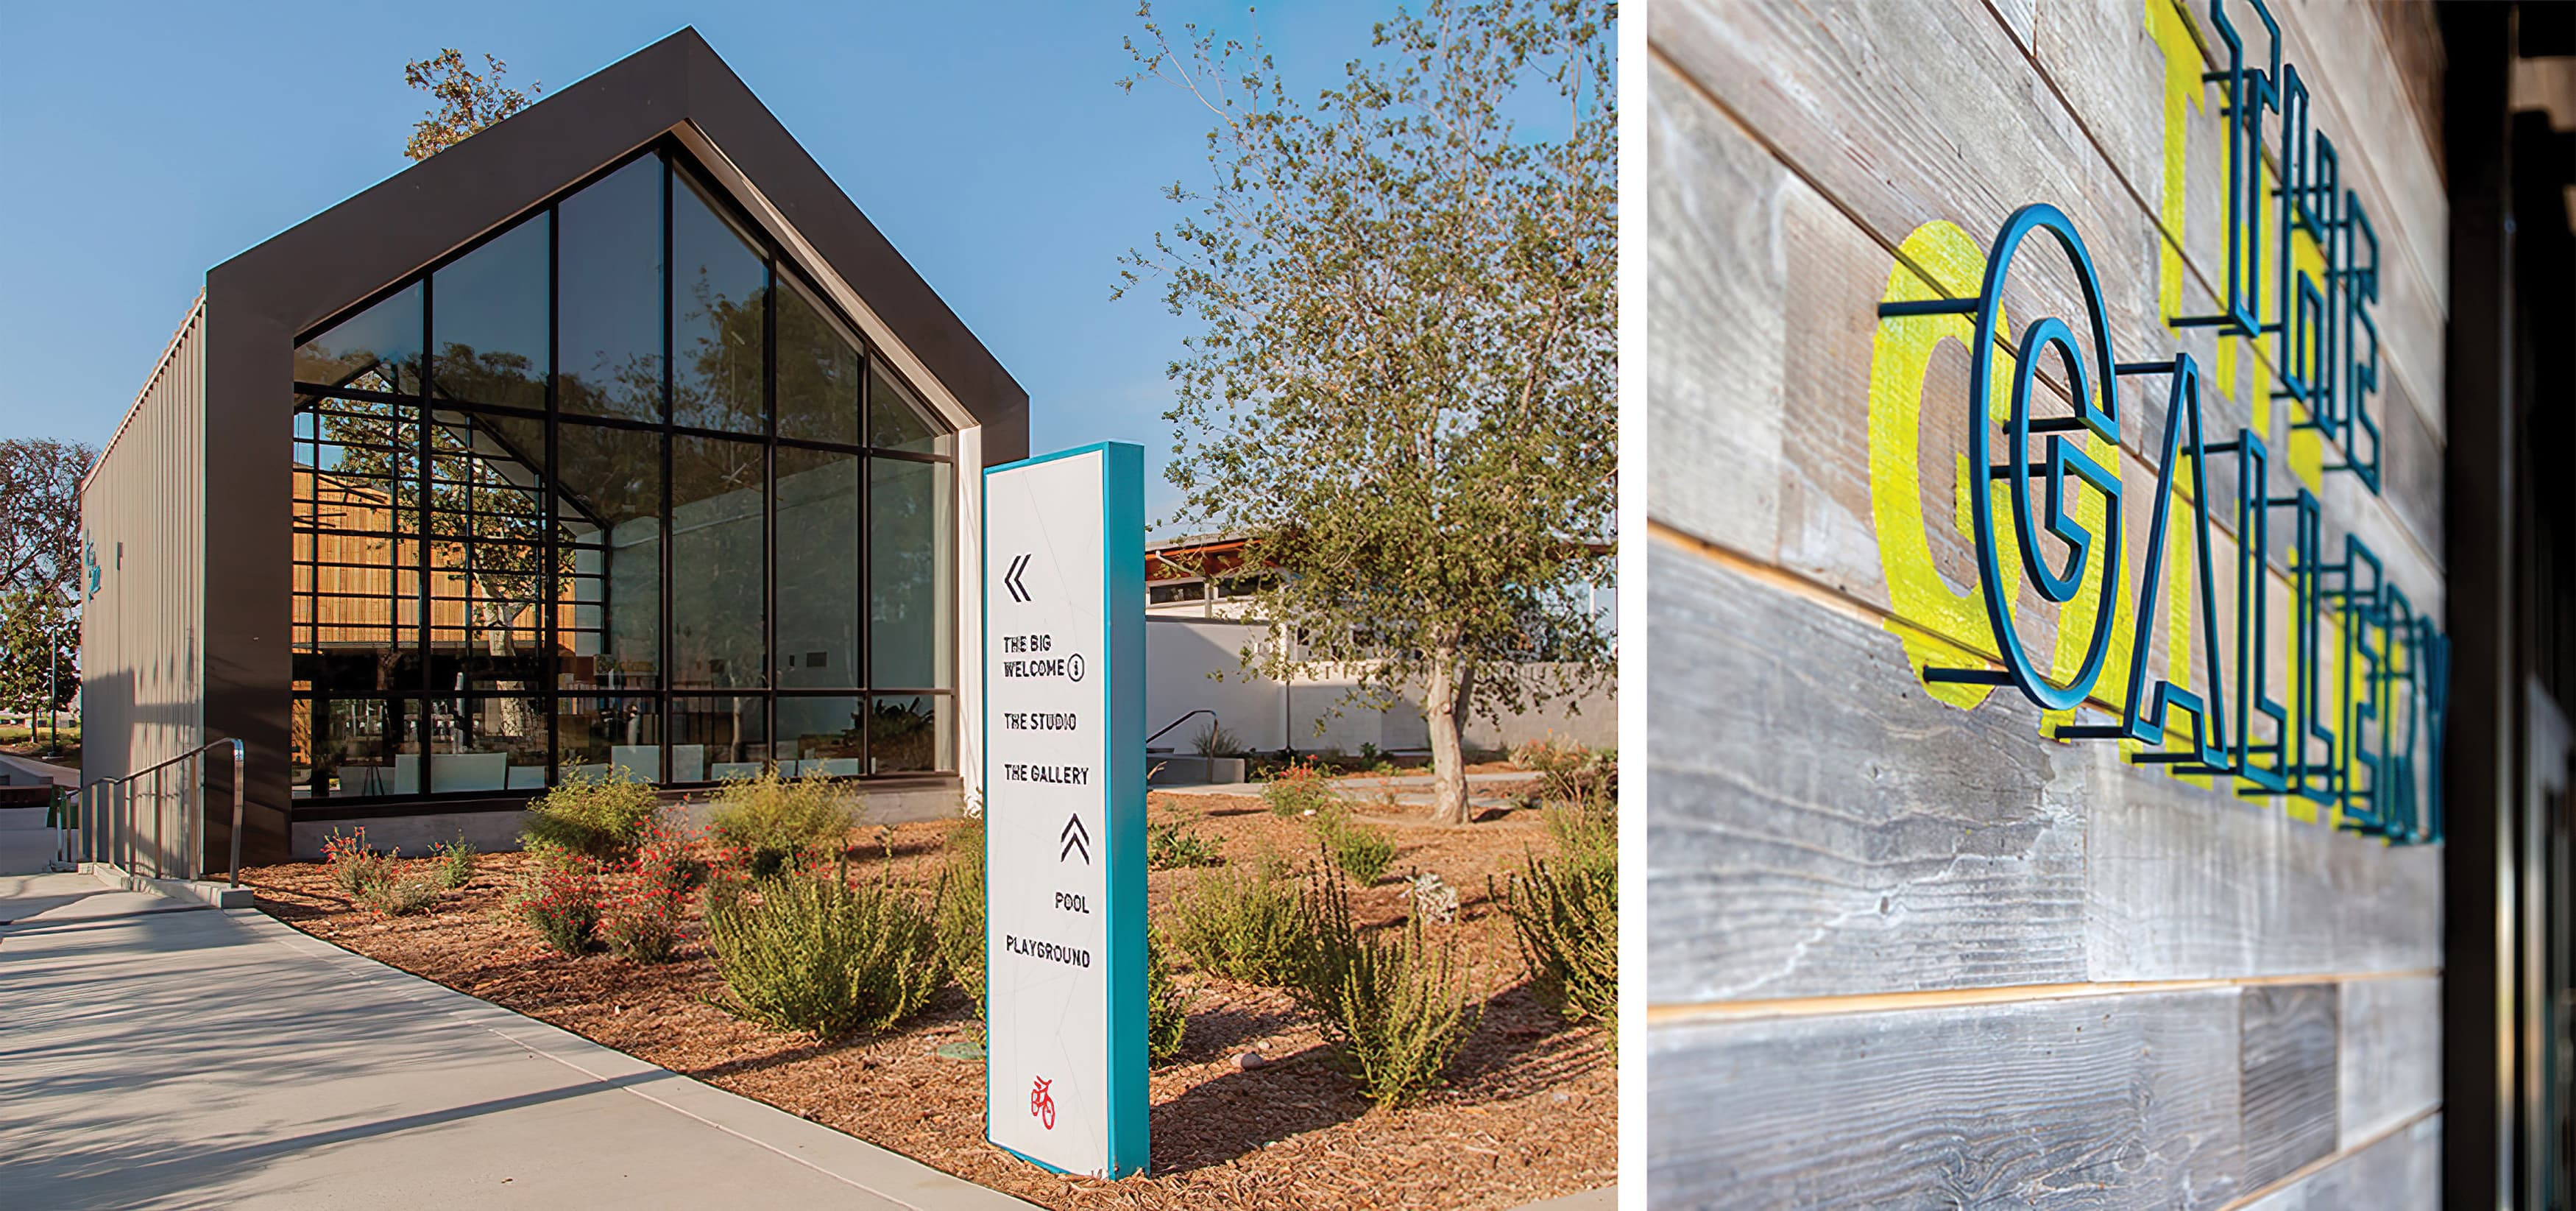 Cadence Park, a park within the Great Park Neighborhood in Irvine, California. RSM Design prepared Wayfinding Signage and Environmental Graphics. Signage Design. Pedestrian Park Signage. Trail Signage.